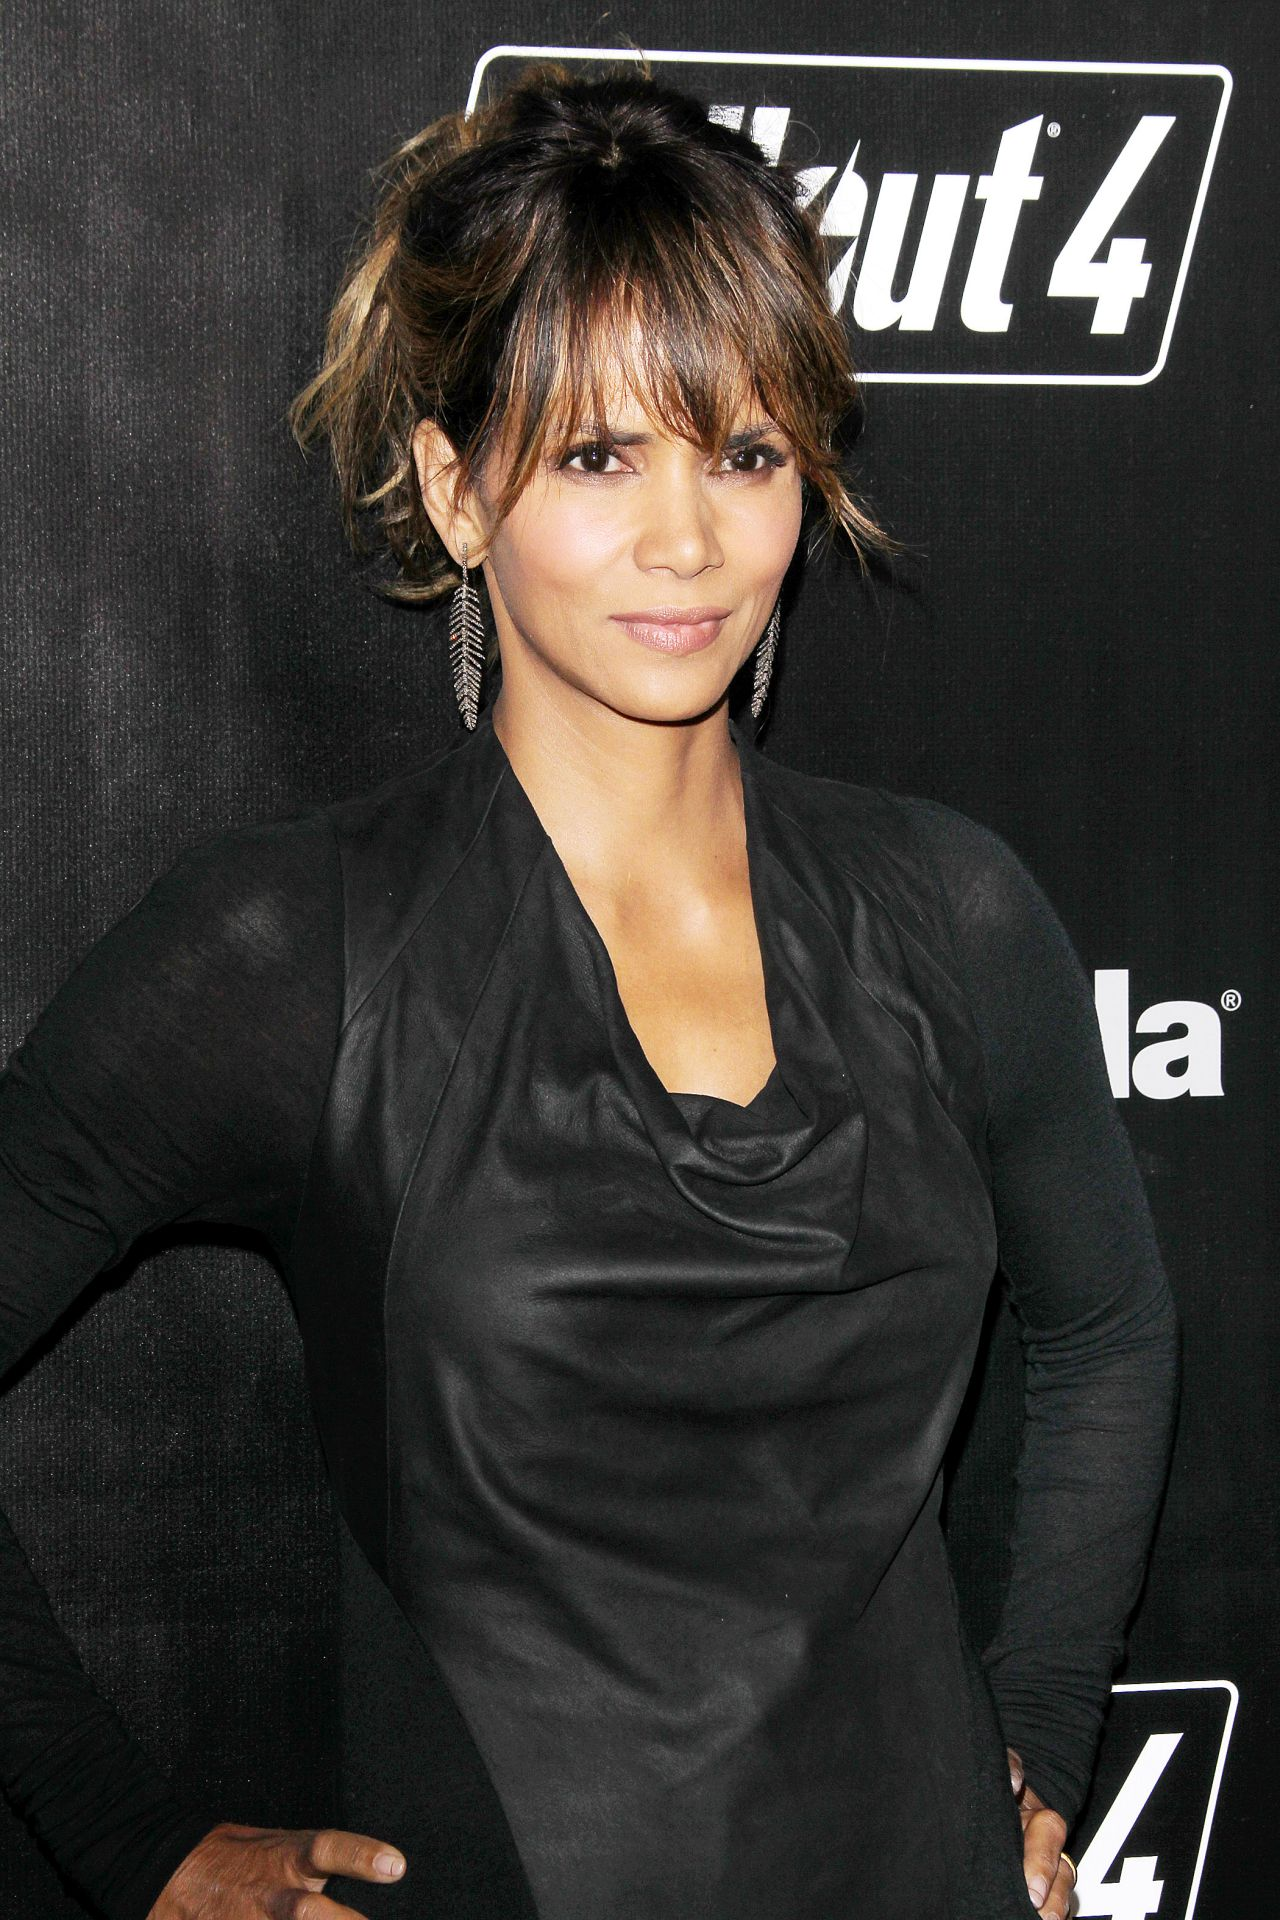 Halle Berry - Fallout 4 Video Game Launch Event in Los Angeles Halle Berry